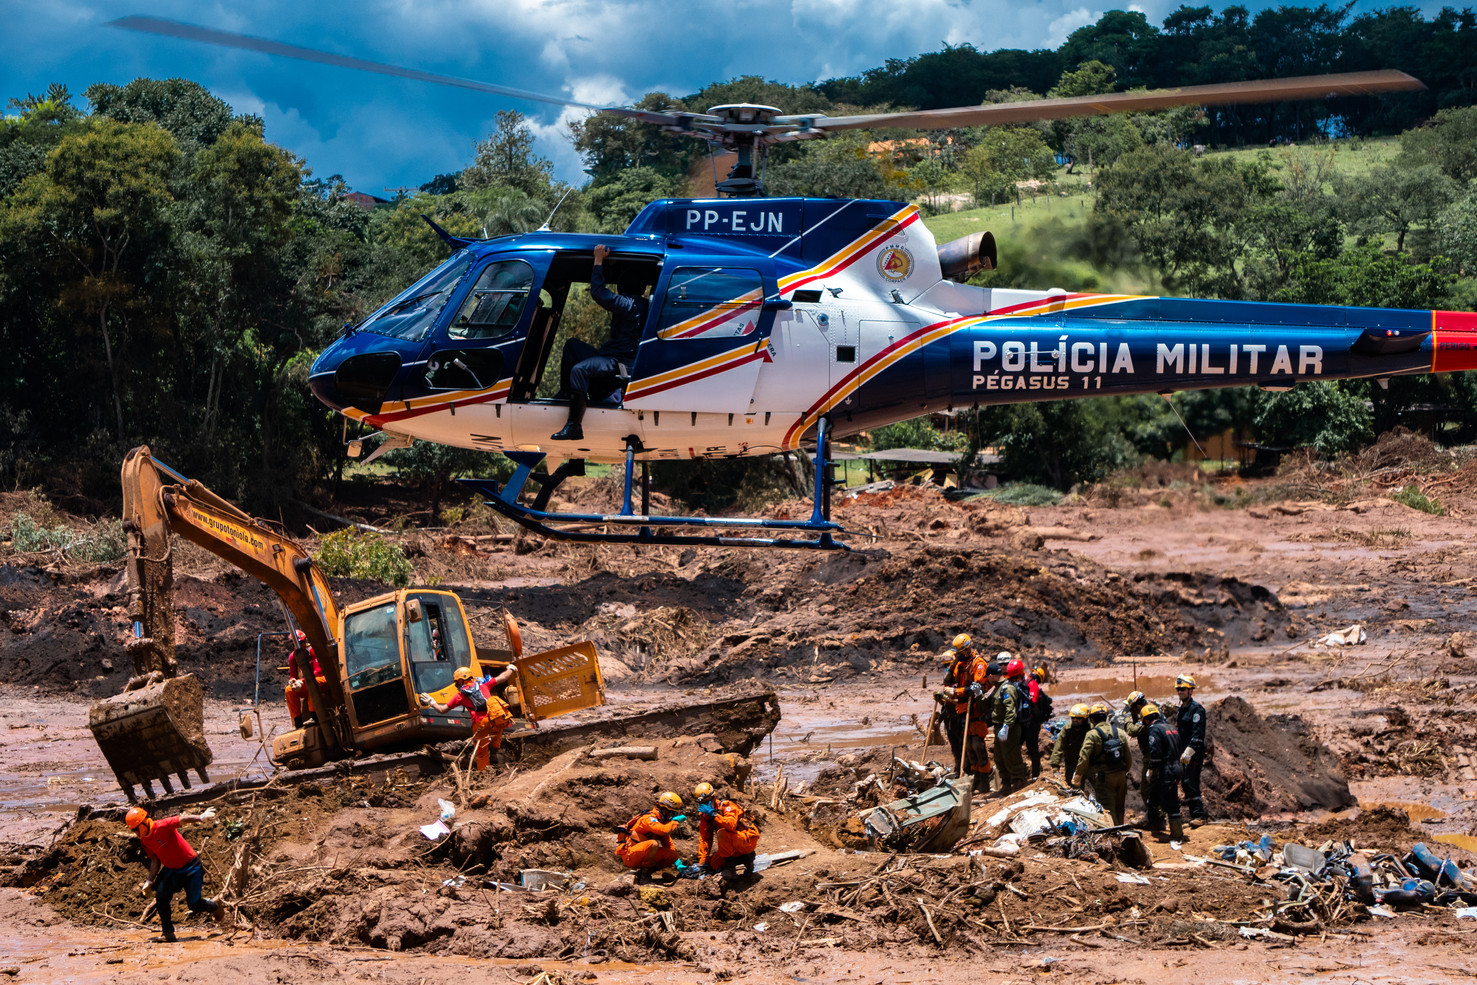 Members of a rescue team search for victims where a bus with several passengers was buried after a tailings dam owned by Brazilian mining company Vale S.A collapsed in Brumadinho, Minas Gerais state, Brazil, January 28, 2019.